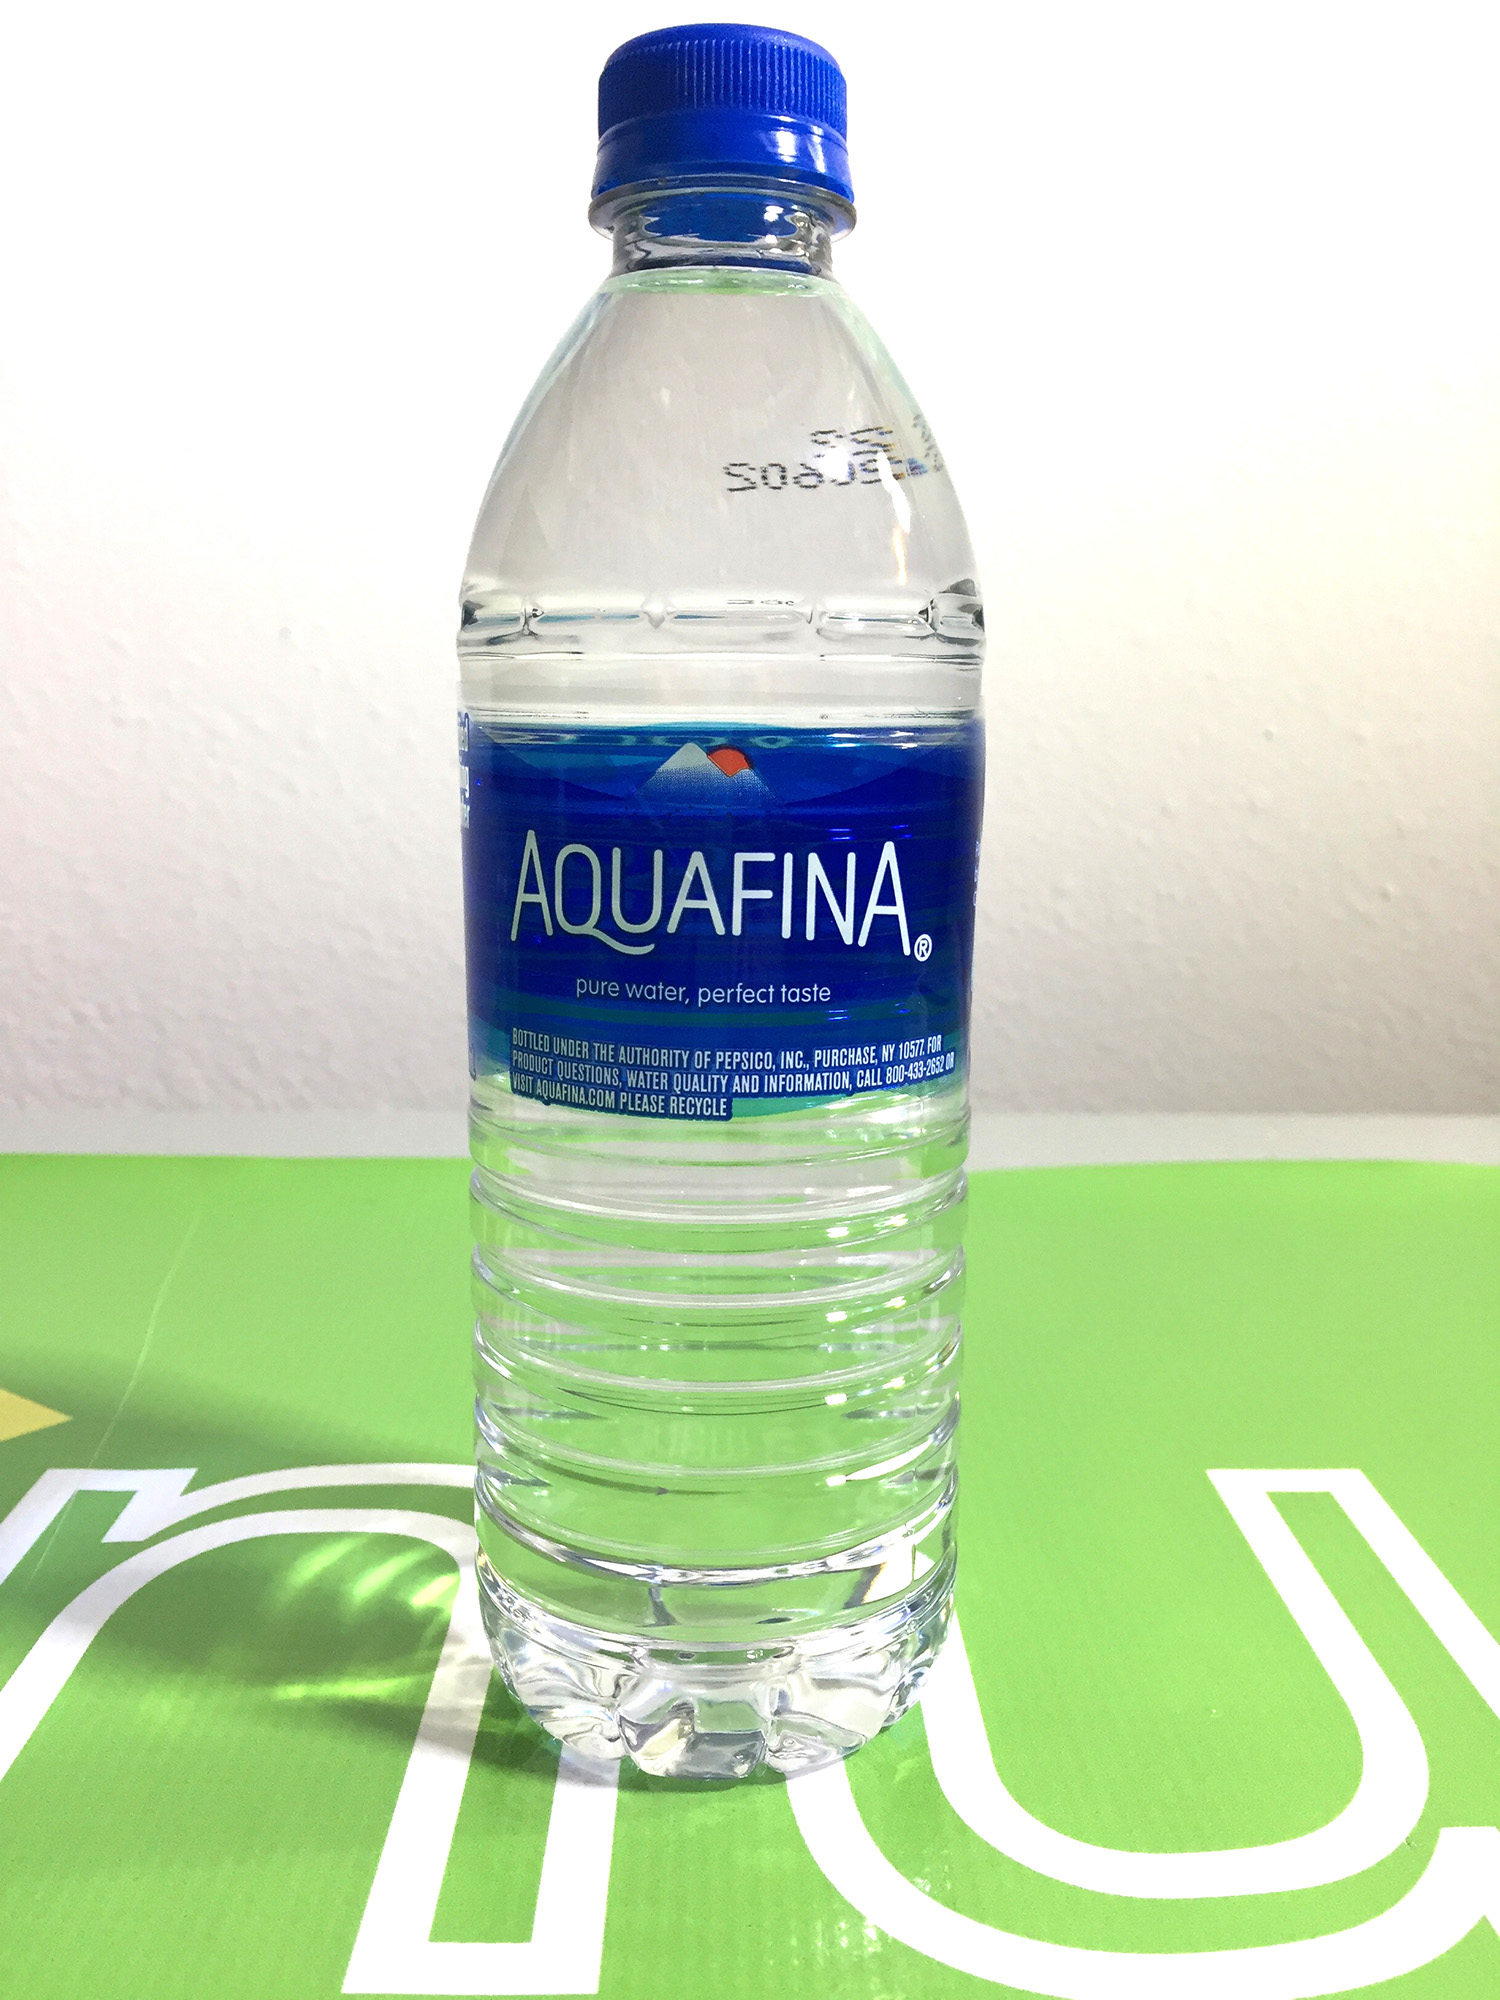 Aquafina Bottled Water 16.9 Fl Oz (500mL)